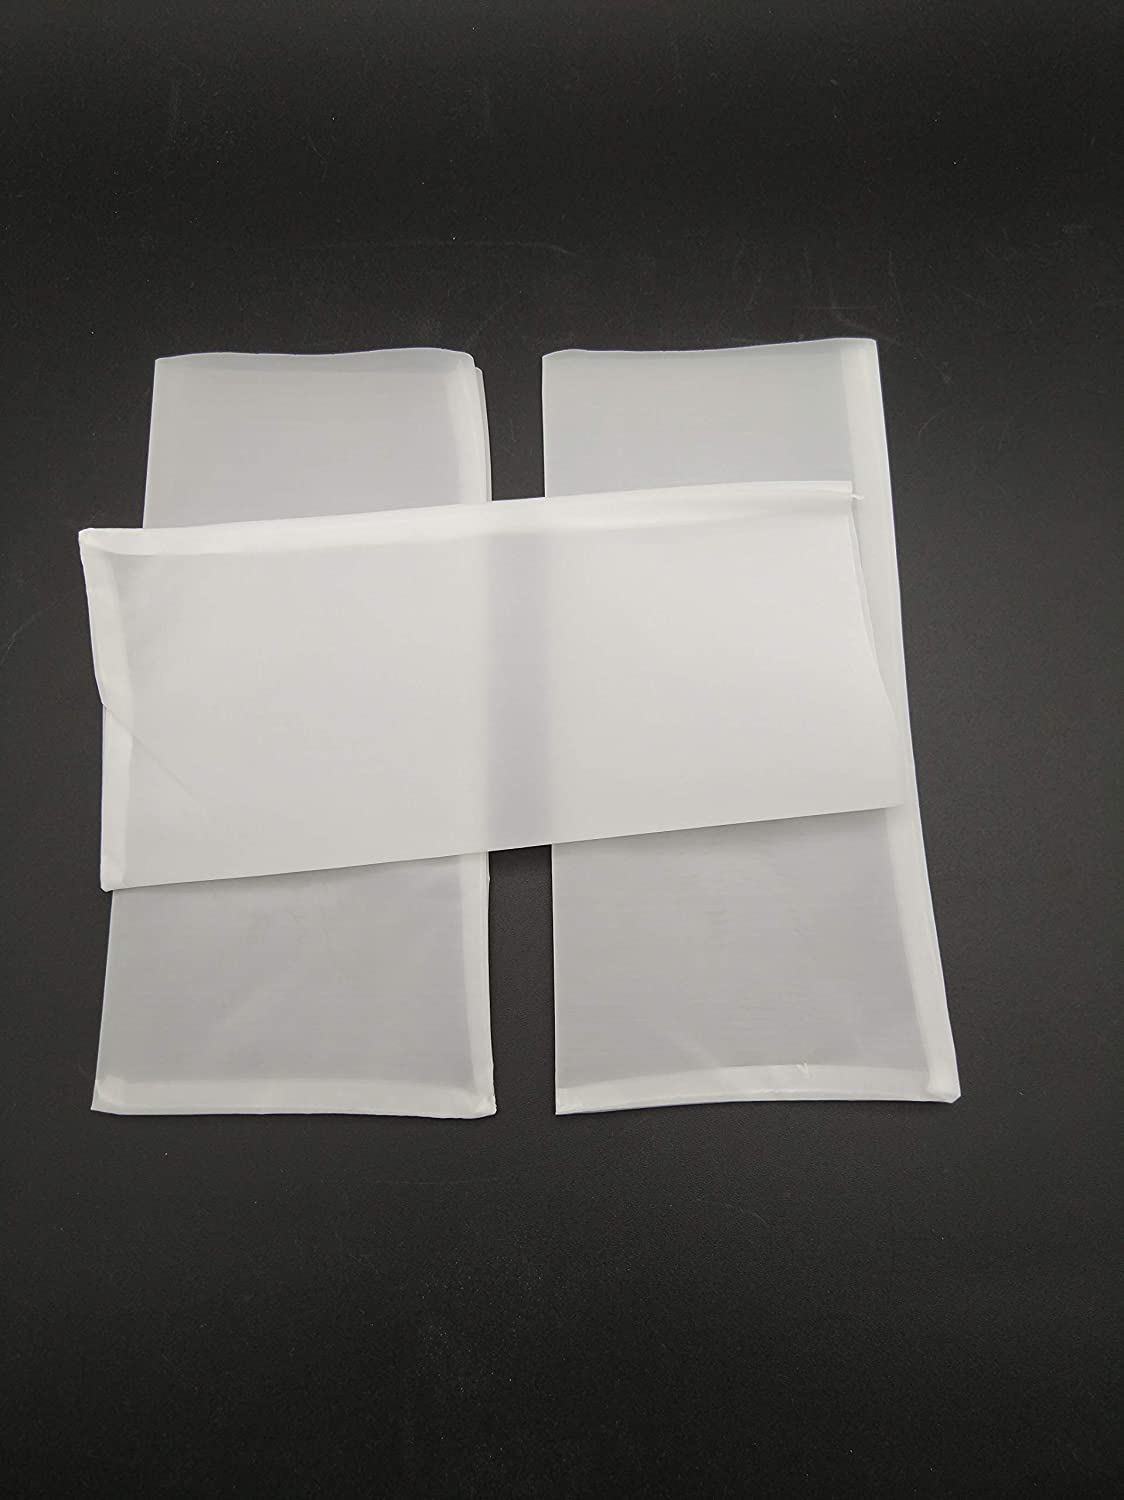 2018 hot Selling Rosin Press Bags 3 Plus 6inch filter bags Premium Quality Extraction Bags Tea Bags in Stocks- 100pack 3x6 90u Micron